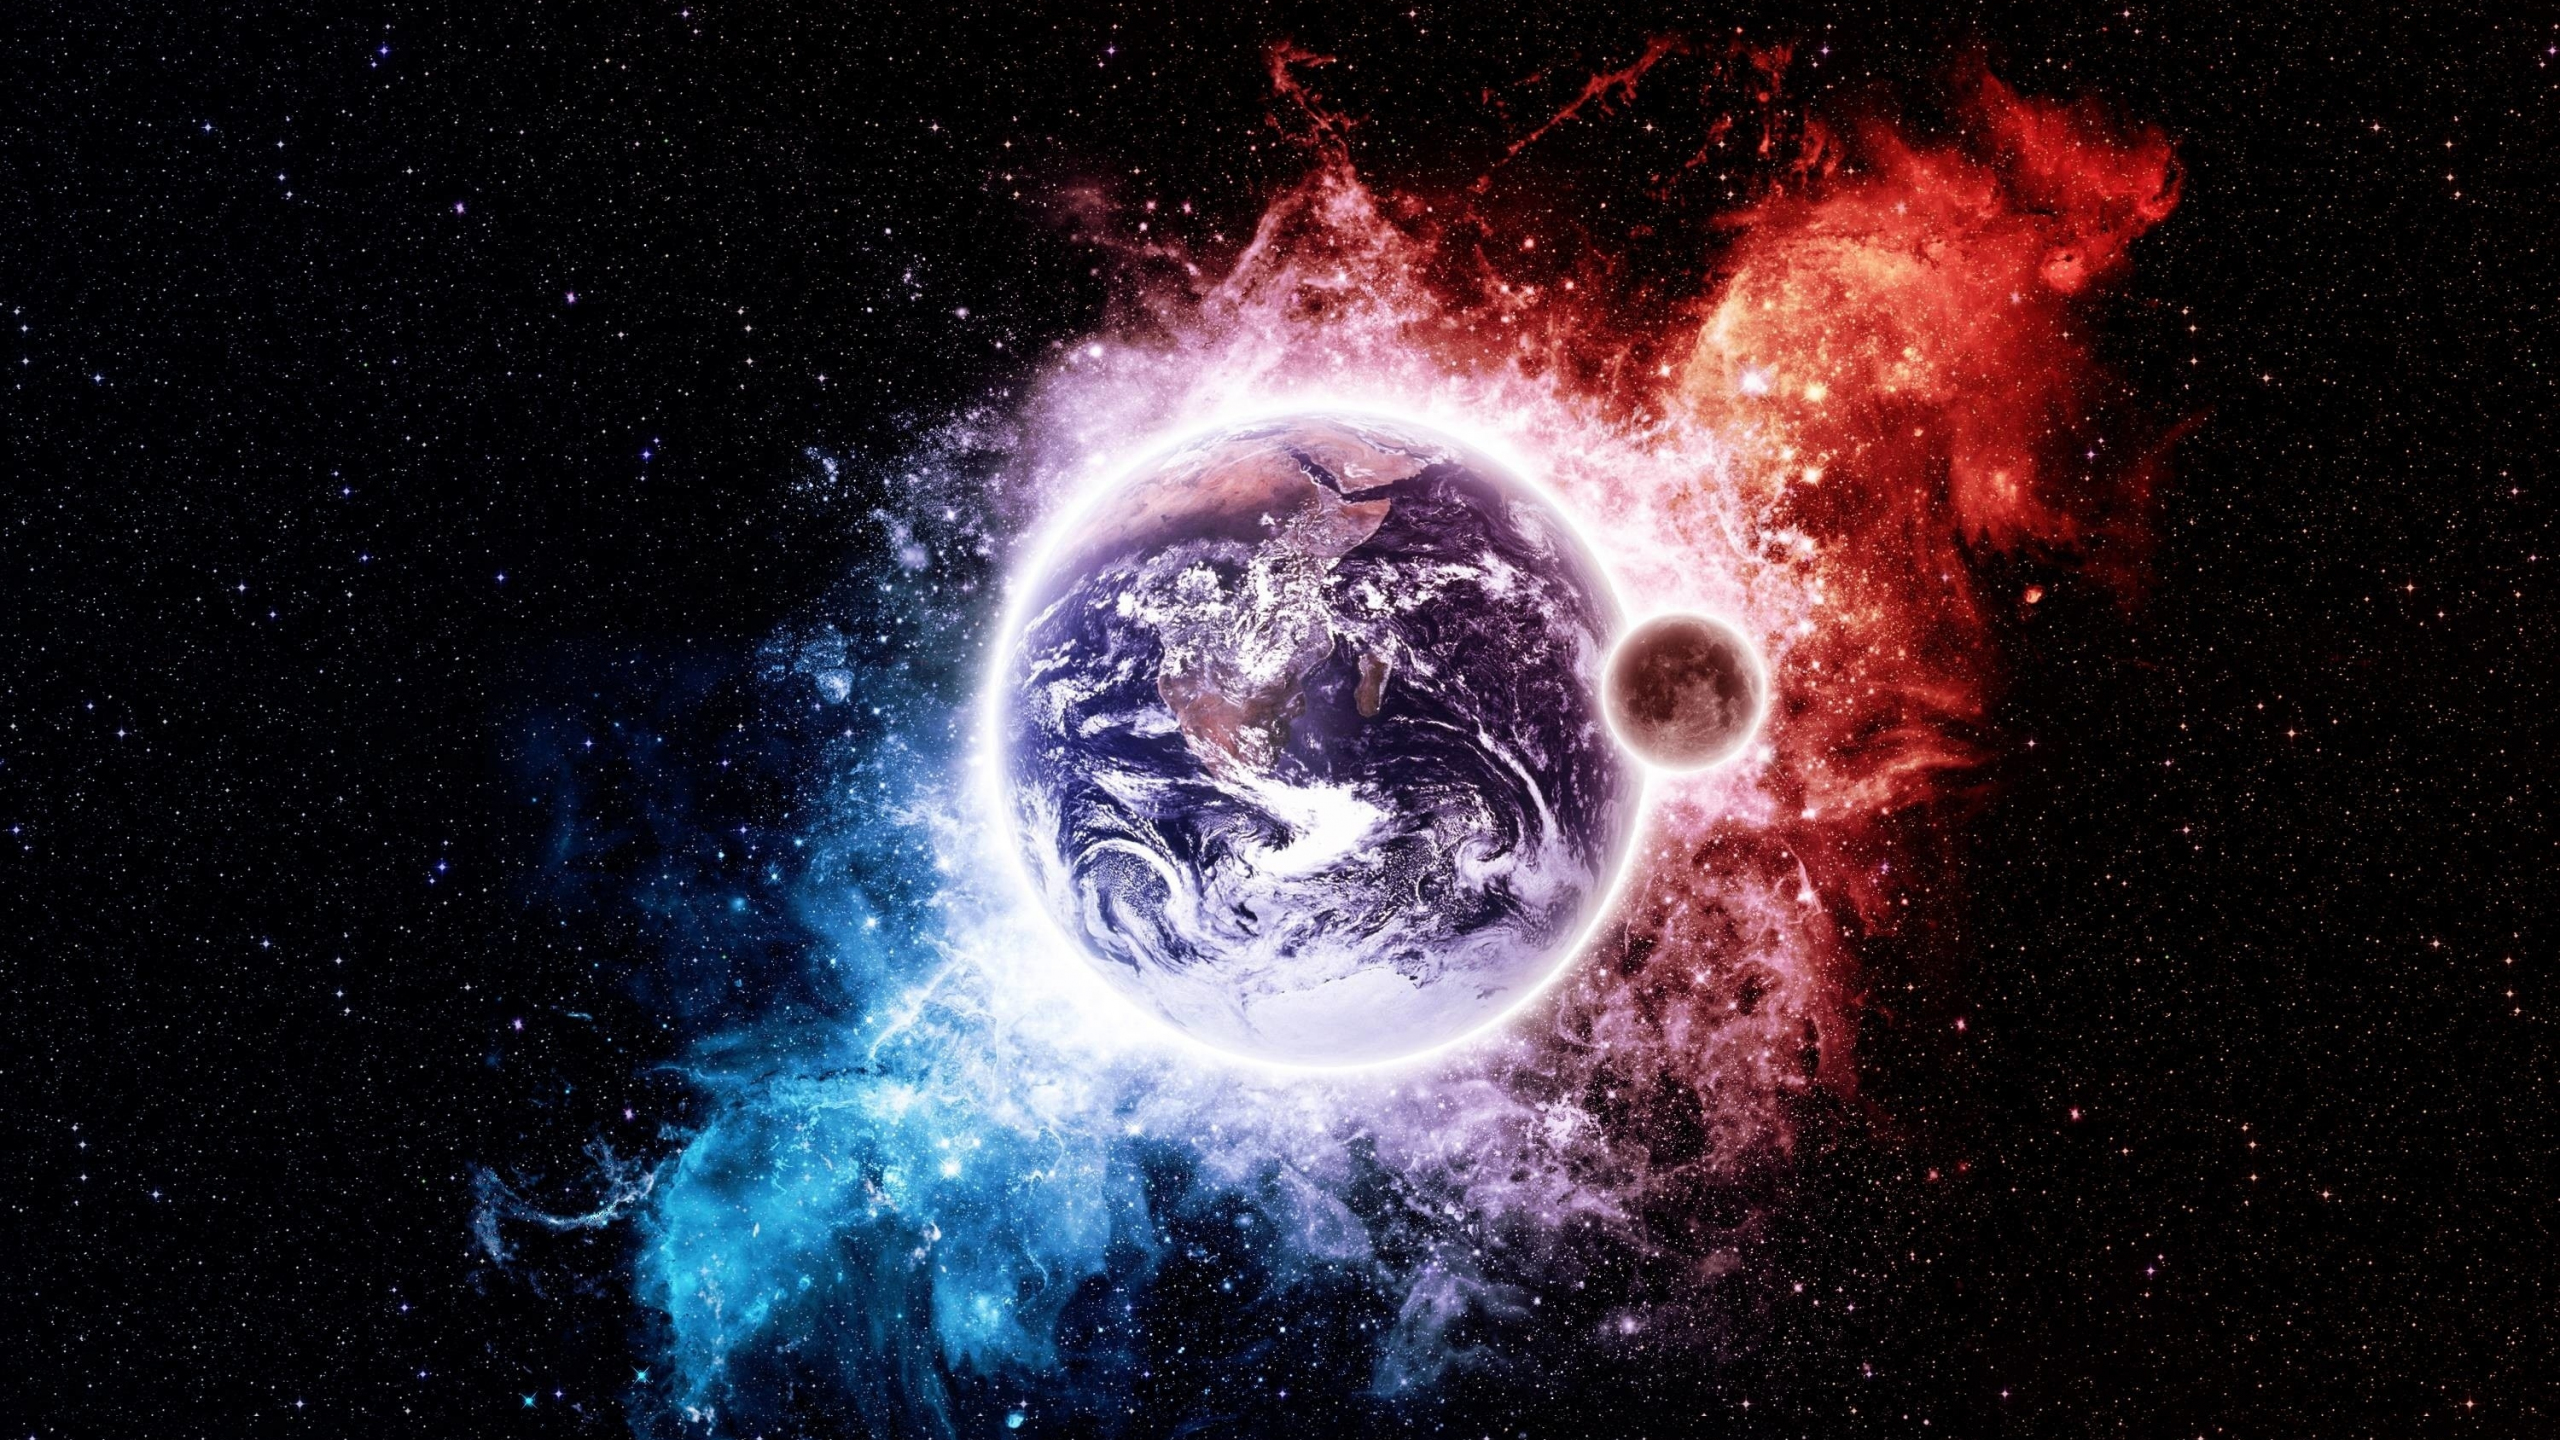 Download 2560x1440 Wallpaper Earth Space Artwork Dual Wide Widescreen 16 9 Widescreen 2560x1440 Hd Image Background 25612